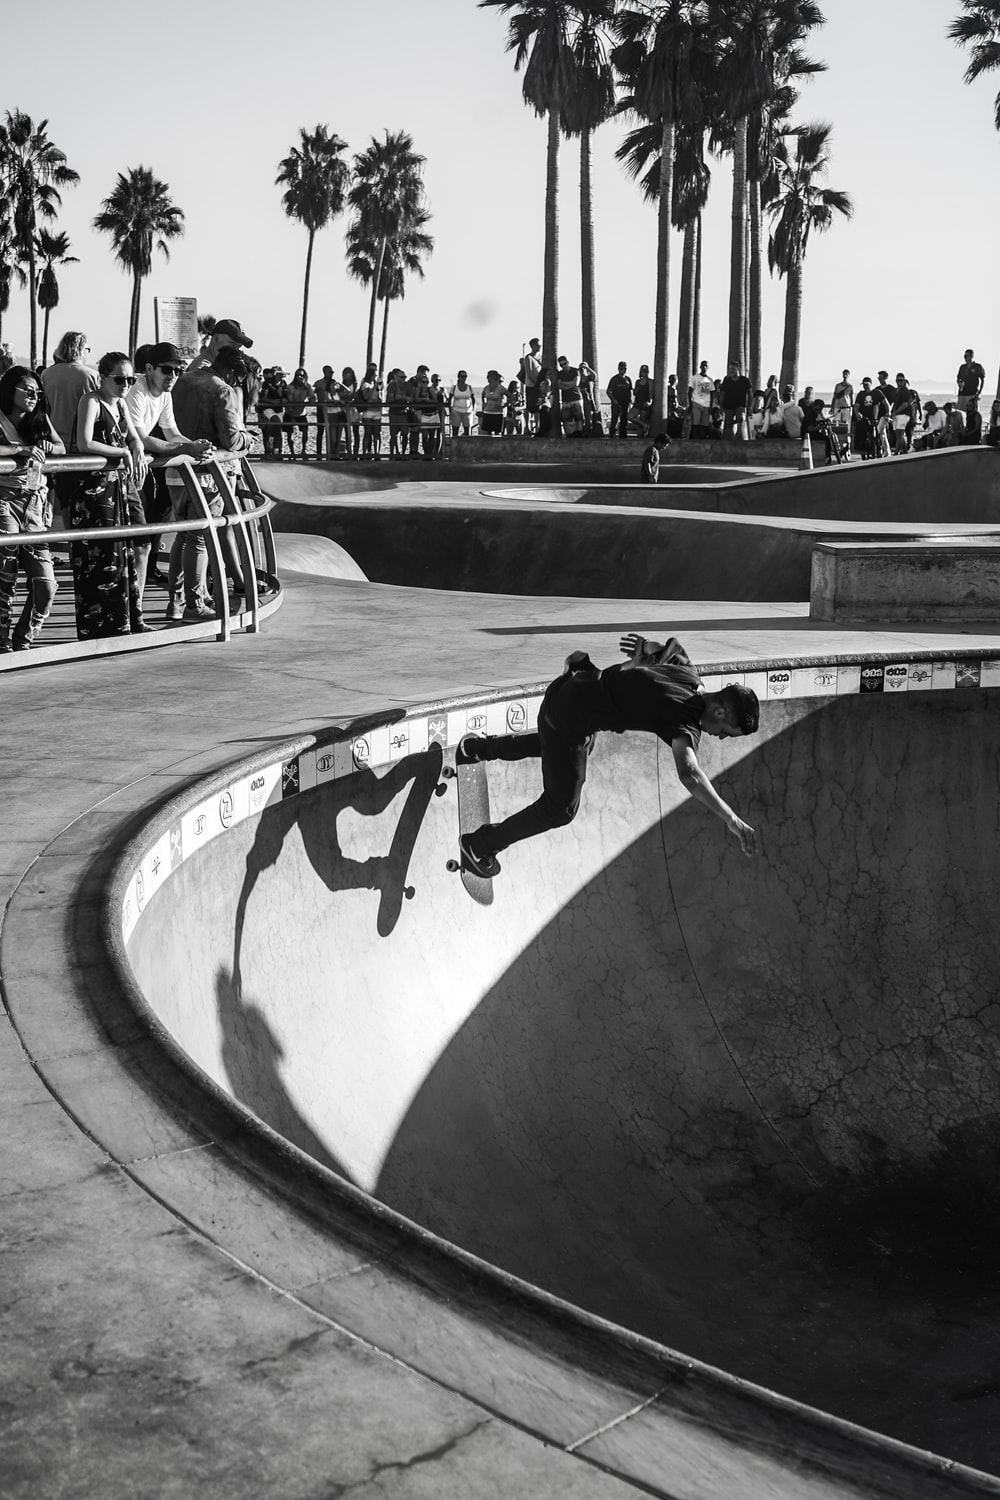 grayscale photography unknown person skateboarding outdoors